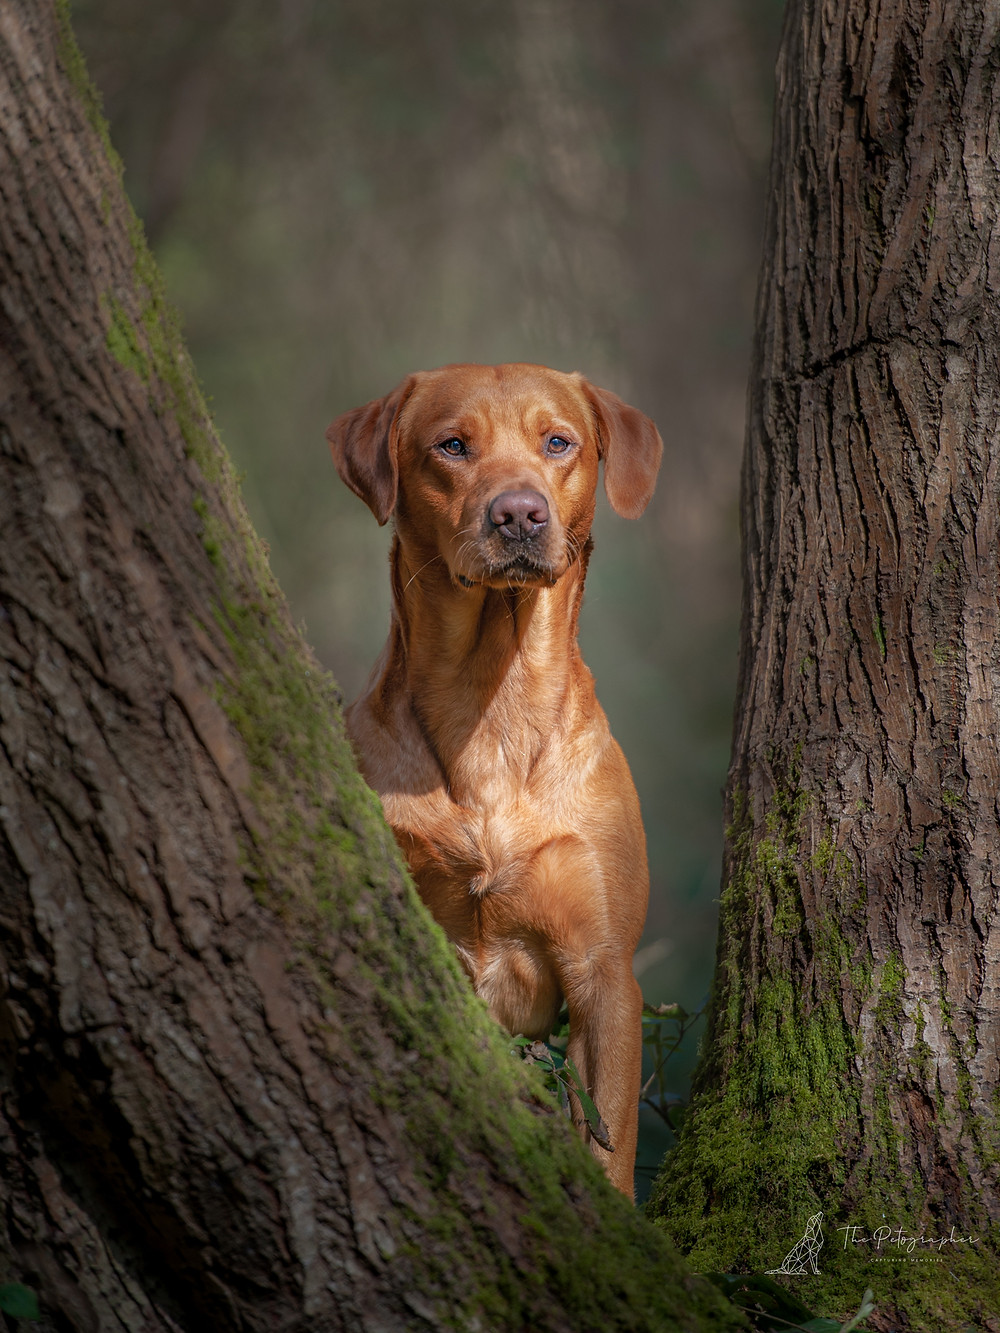 Fox Red Labrador posing looking through tress in nature